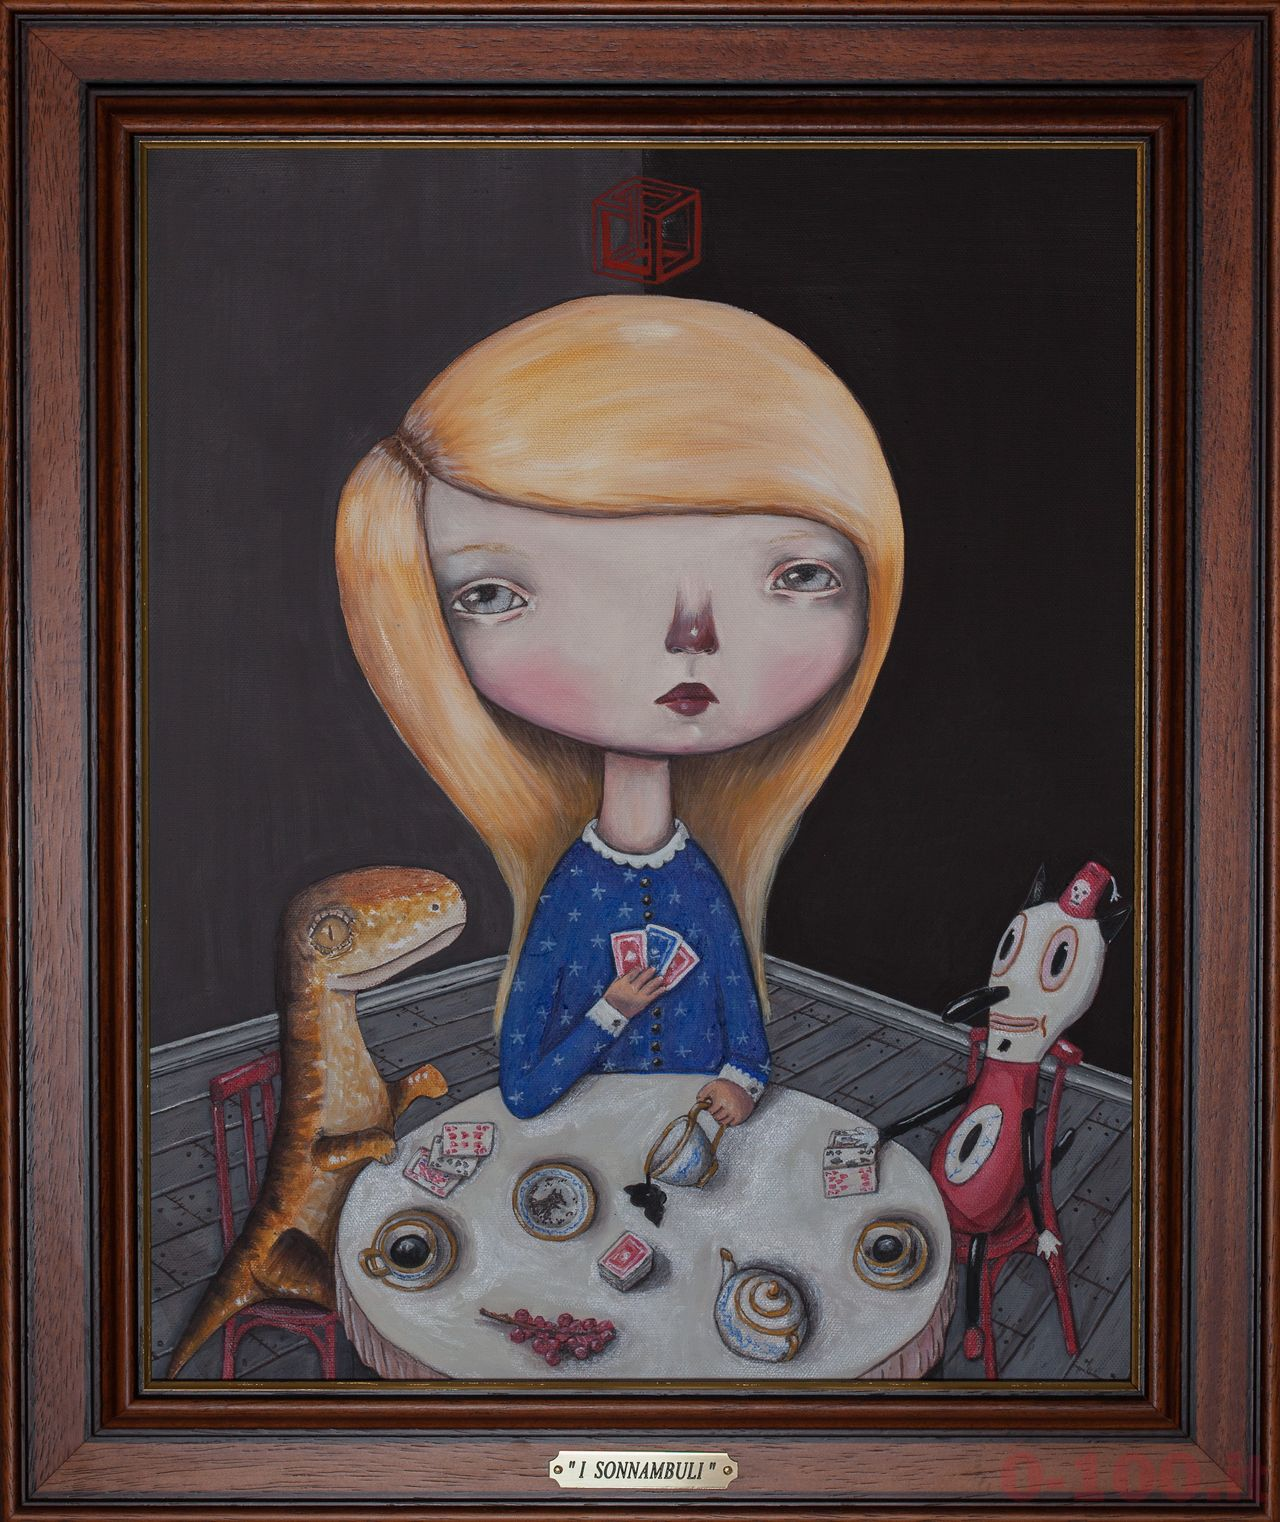 2013_Sabrina_Dan_I SONNAMBULI_oil on canvas_50x40_0-100